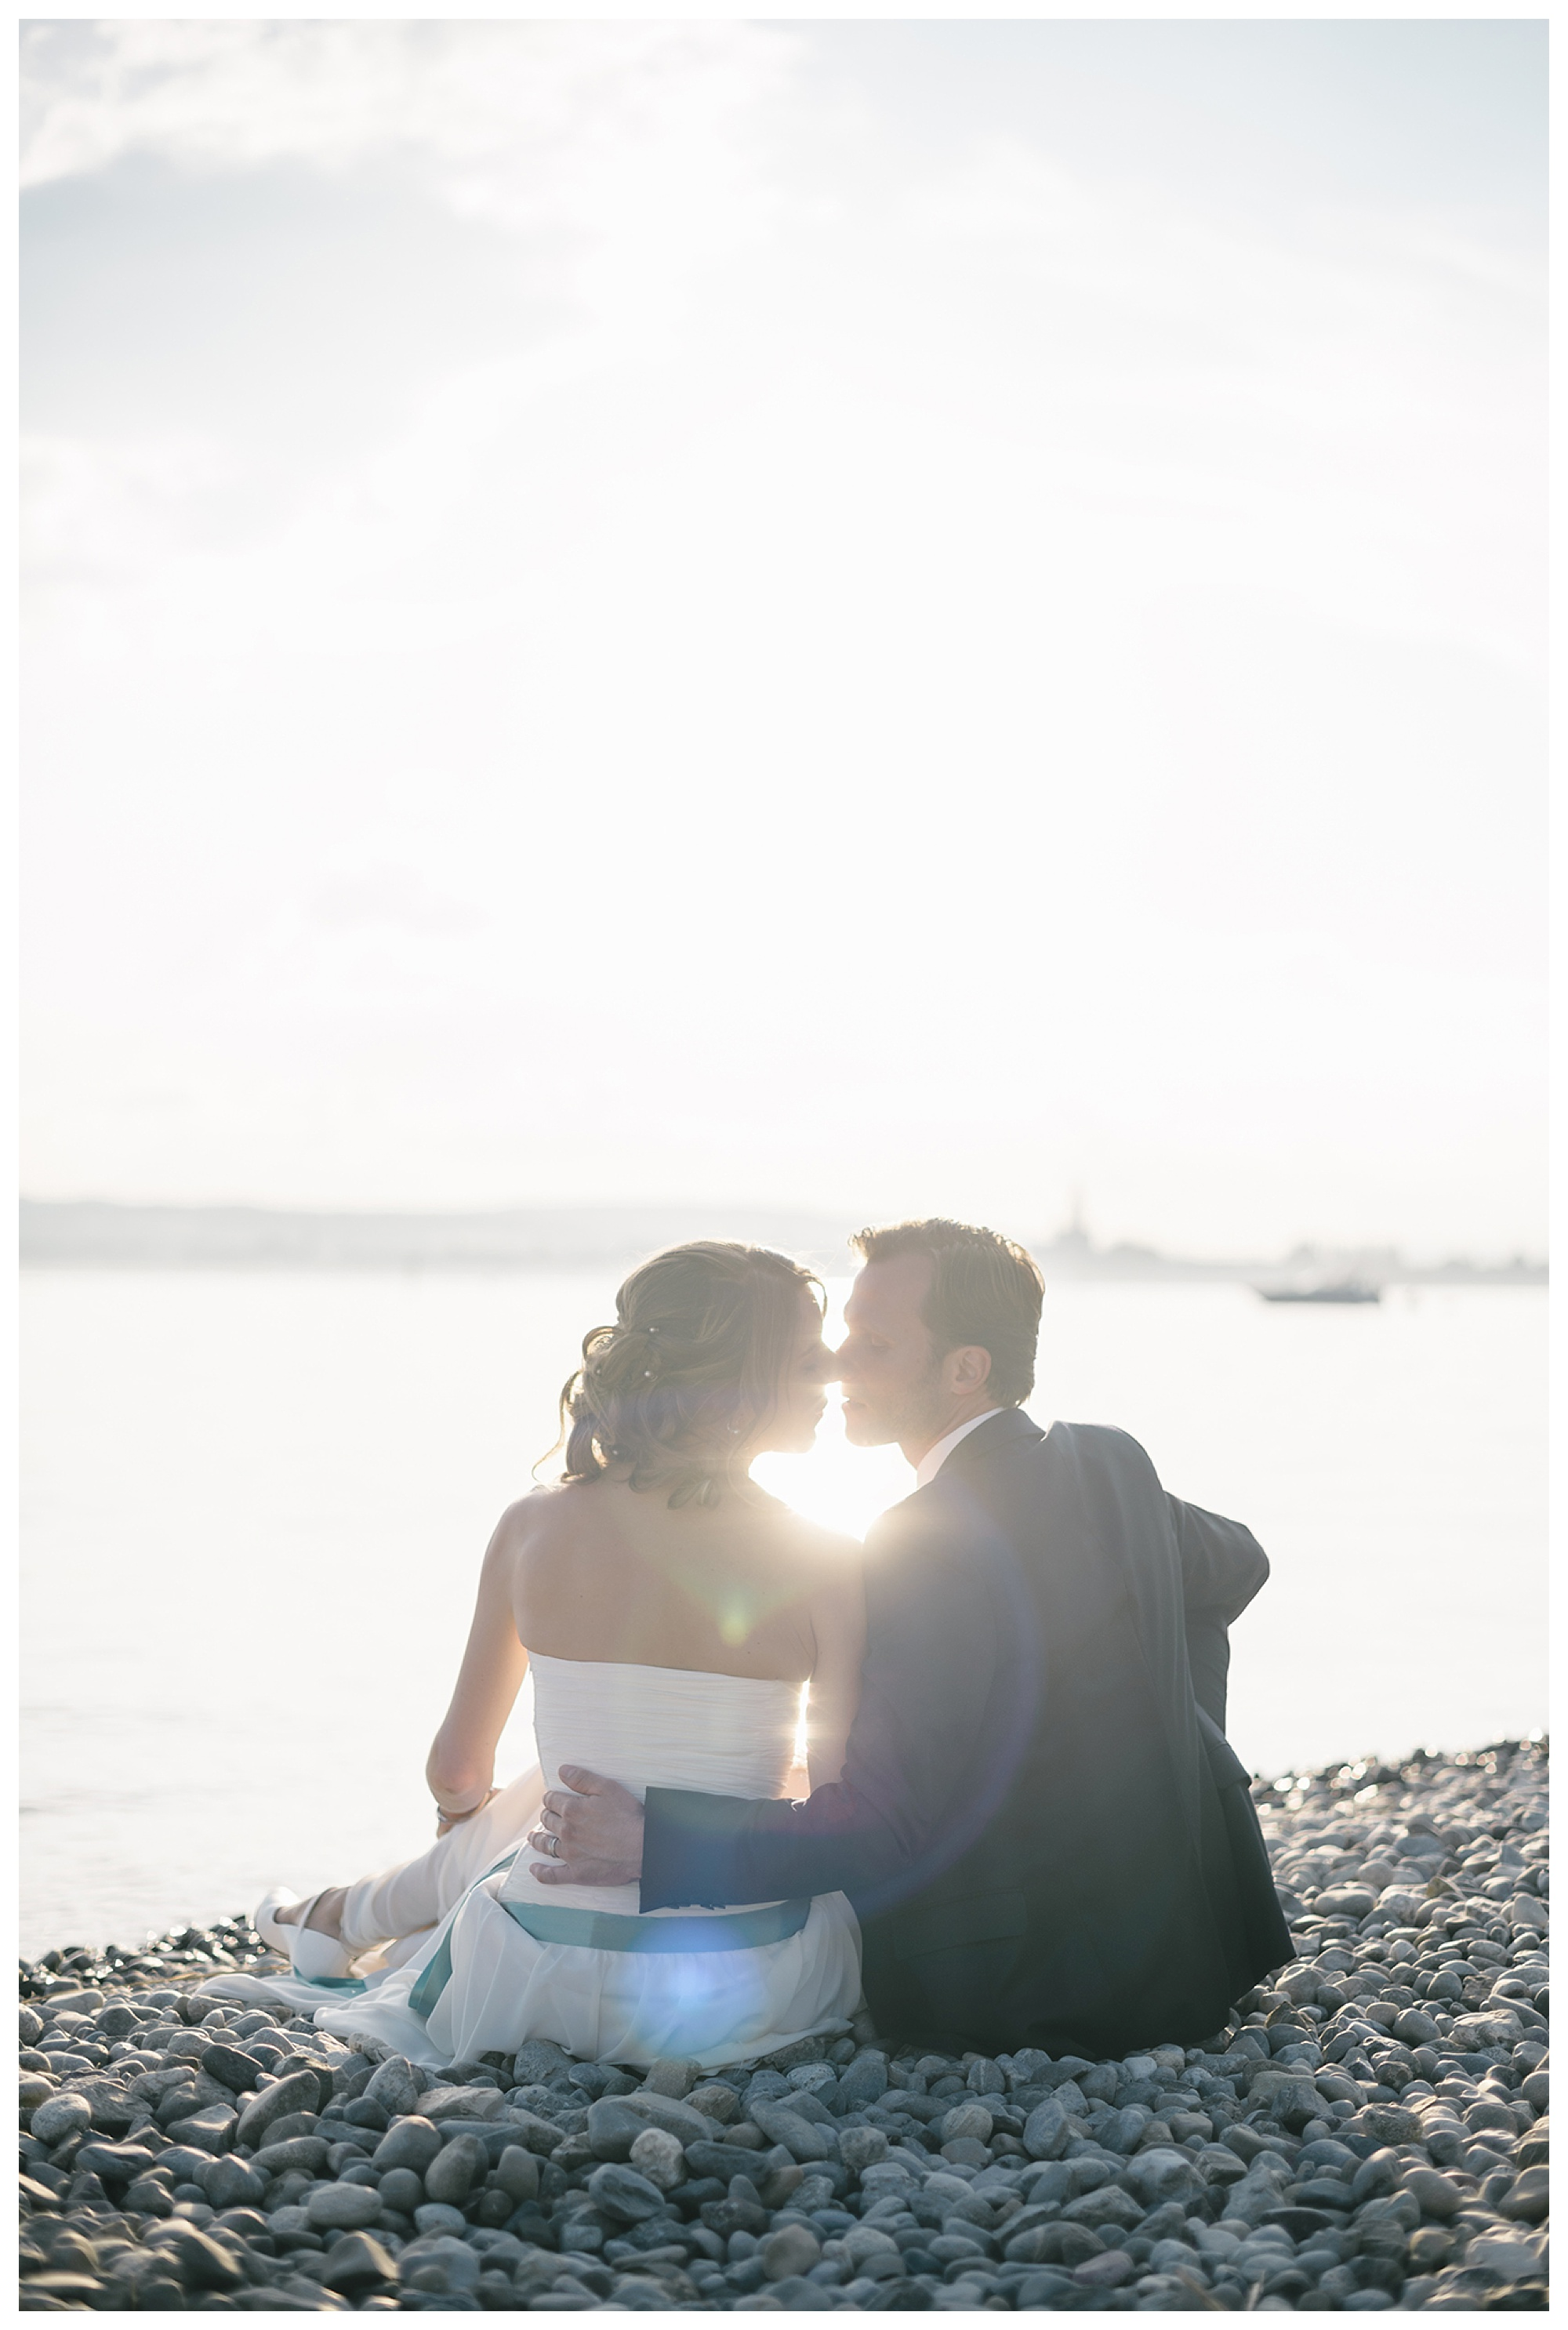 Fotograf Konstanz - Hochzeitsreportage Konstanz Raphael Nicole Elmar Feuerbacher Photography Hochzeit Portrait 48 - Wedding in Constance at Lake of Constance  - 68 -